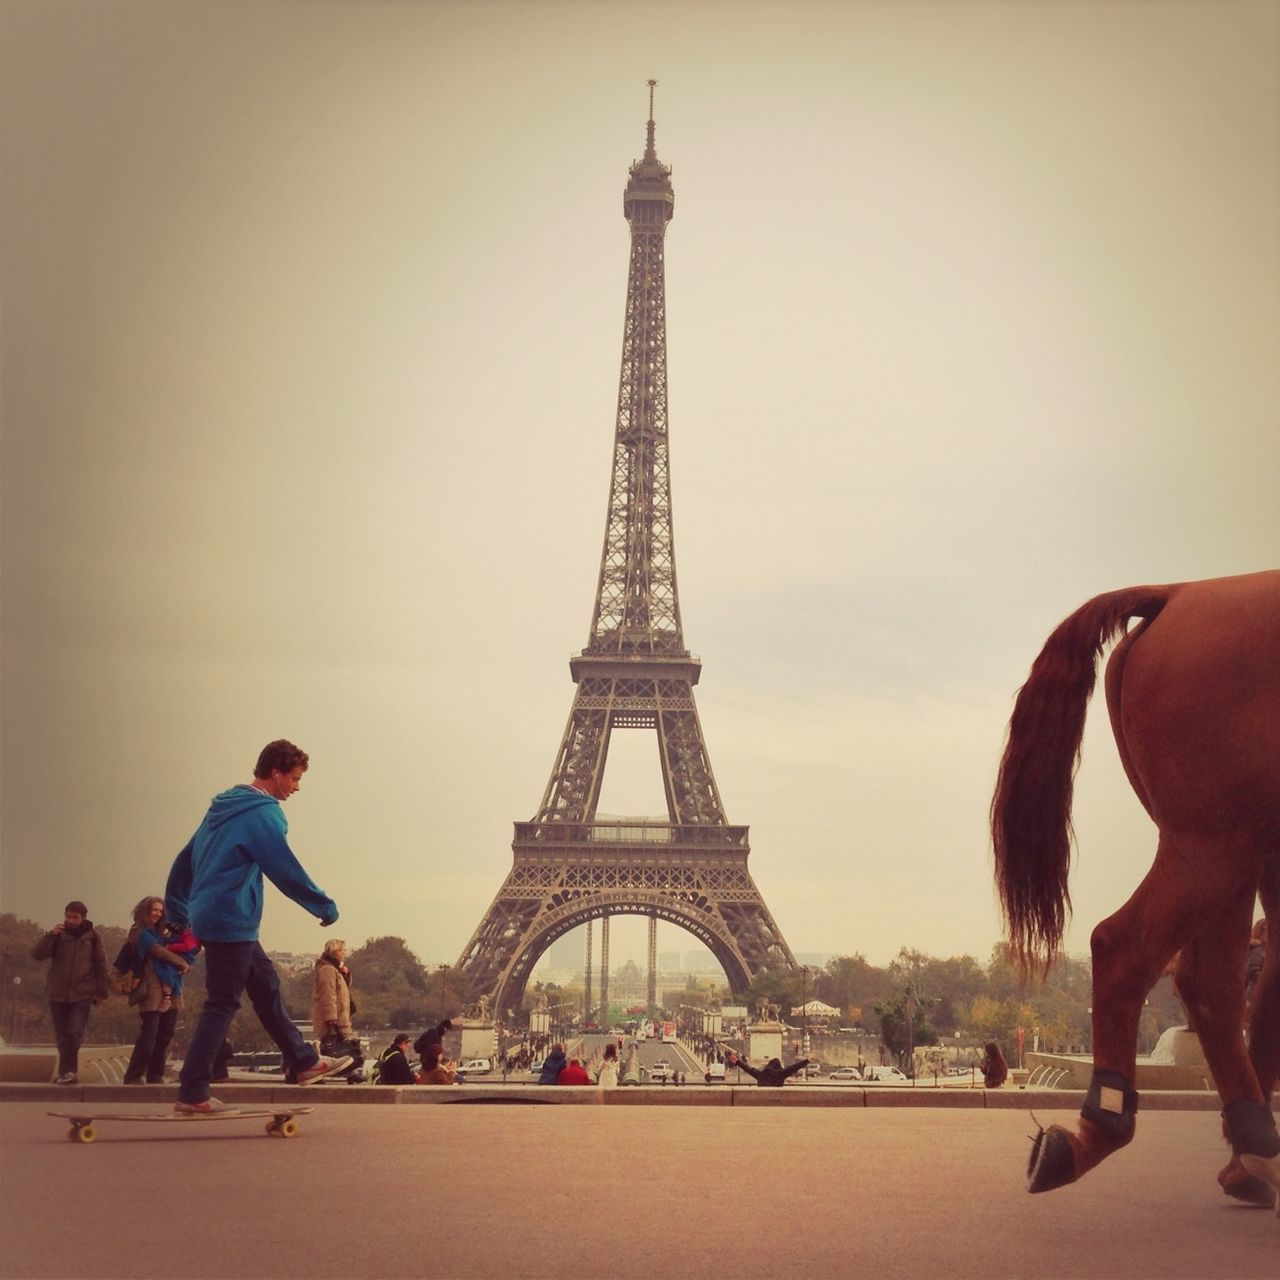 eiffel tower, tower, tourism, international landmark, travel destinations, culture, famous place, travel, architecture, built structure, full length, capital cities, tall - high, city, tourist, casual clothing, in front of, iron - metal, building exterior, sky, vacations, tall, history, day, architectural feature, outdoors